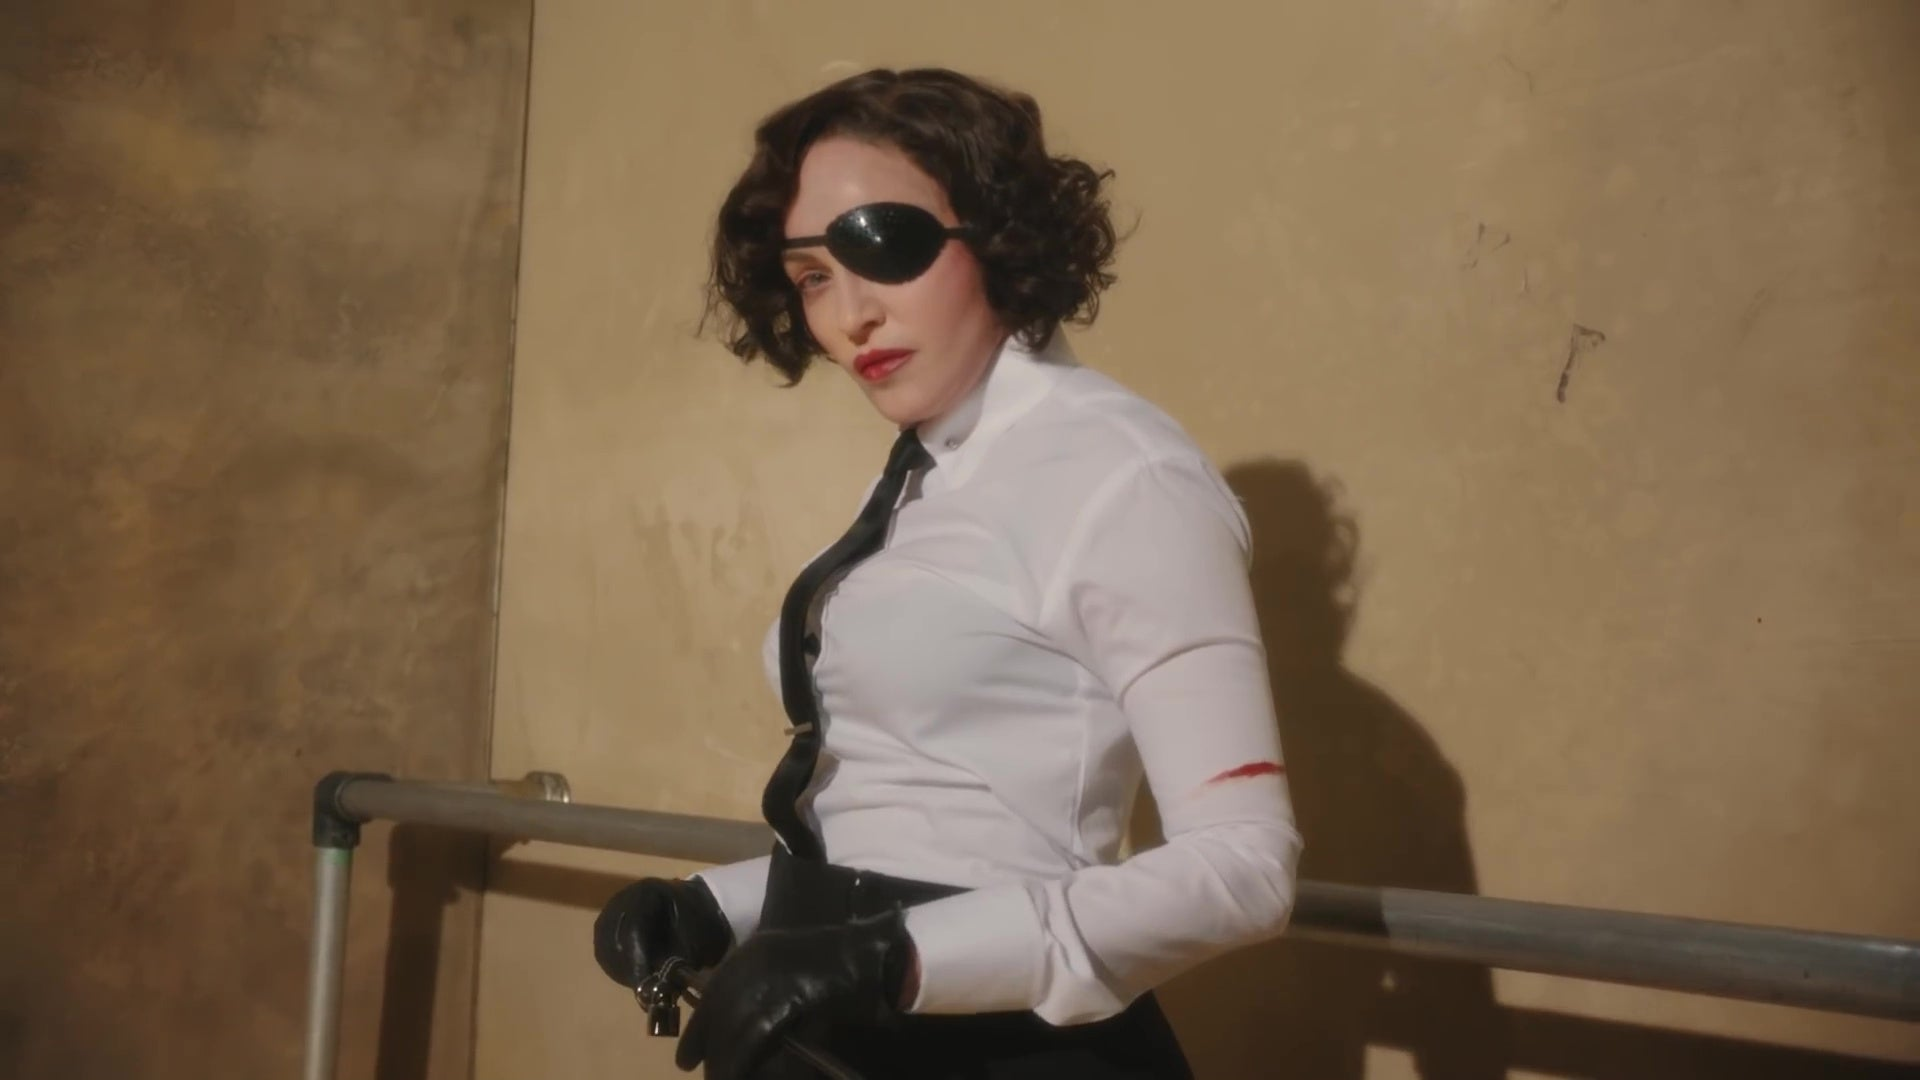 Madonna, in a white dress shirt, black tie, black eyepatch, and black leather gloves.